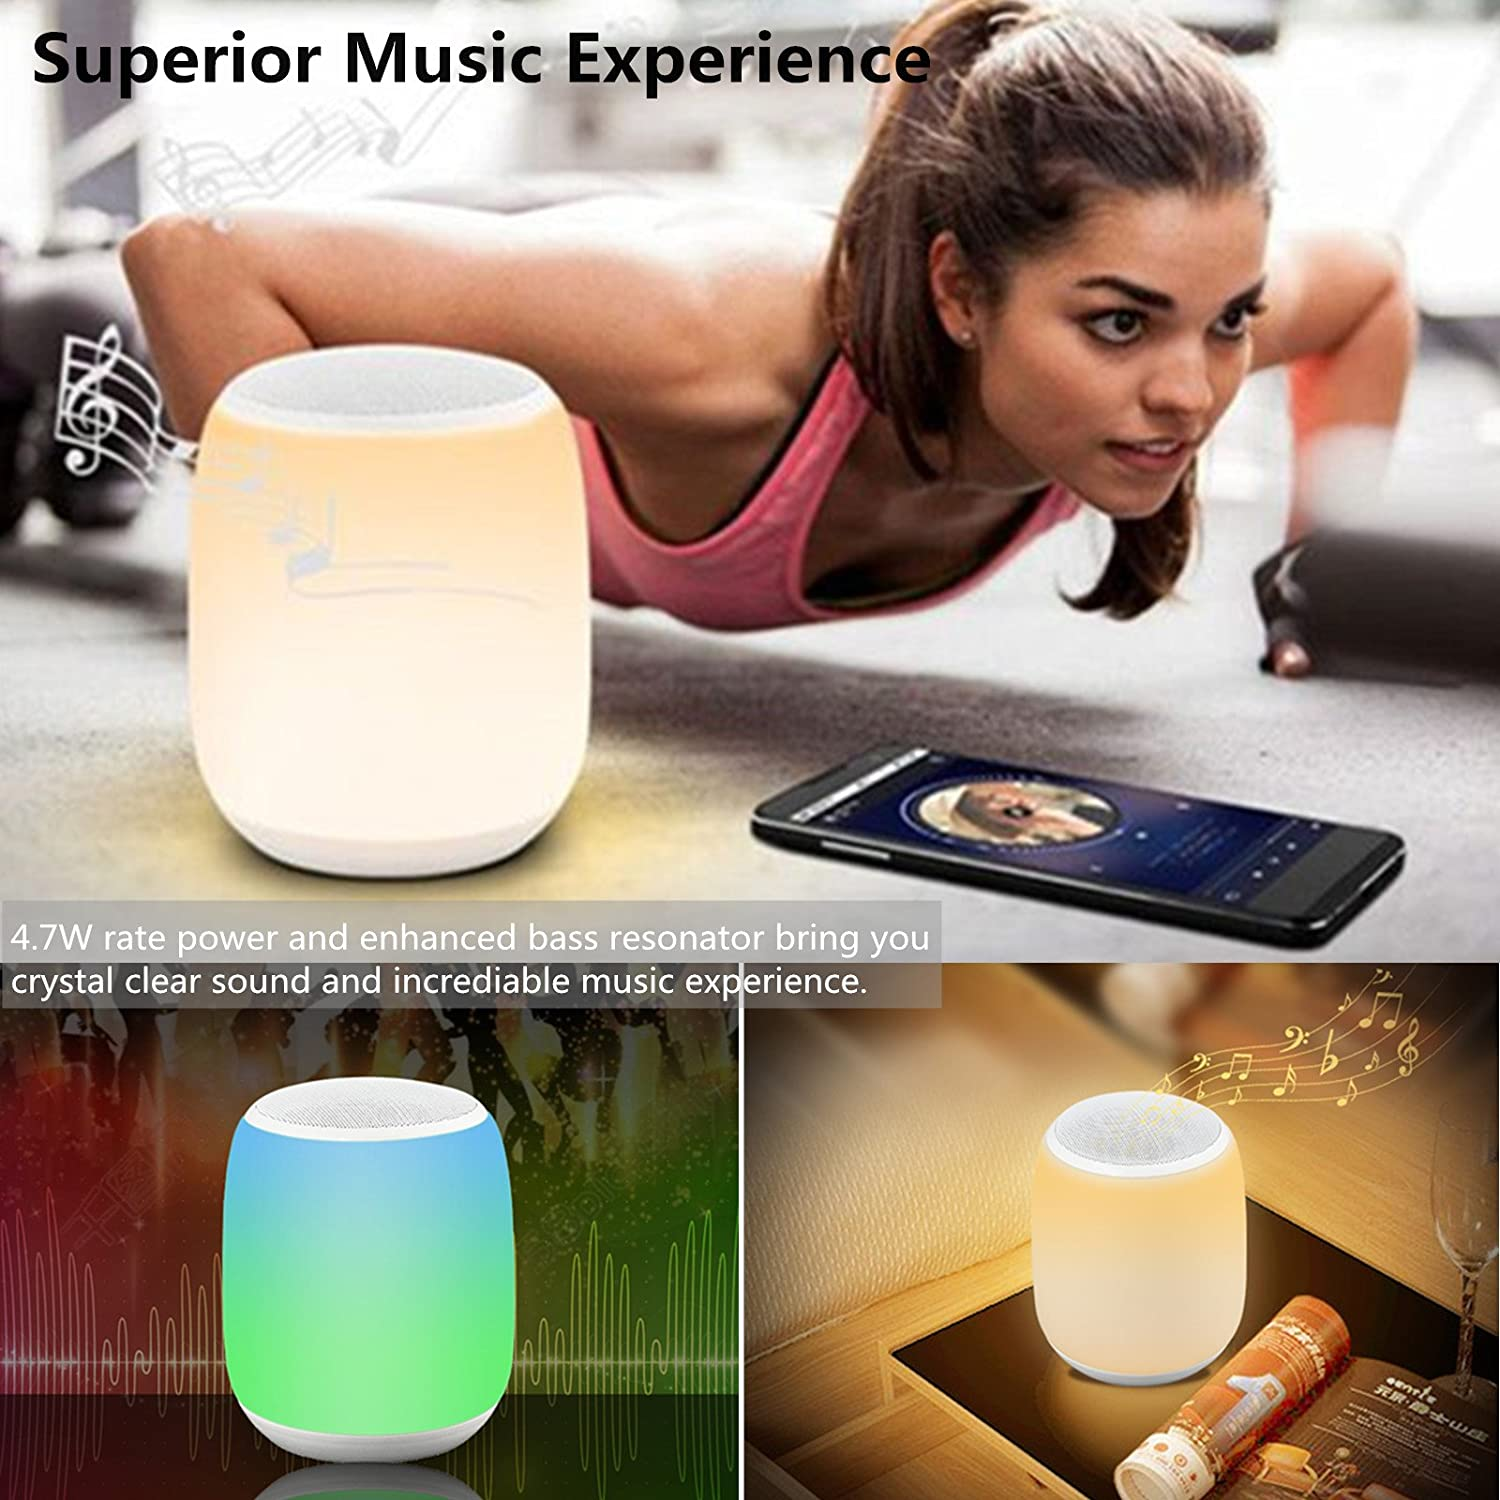 LED Bluetooth Speaker ieGeek Portable Wireless Speaker Night Light w// 6000mAh Power Bank Color Changing Bedside Lamp Table Lamp Smart Touch Mood Lamp MP3 Player Waterproof for Party//Bedroom//Outdoor